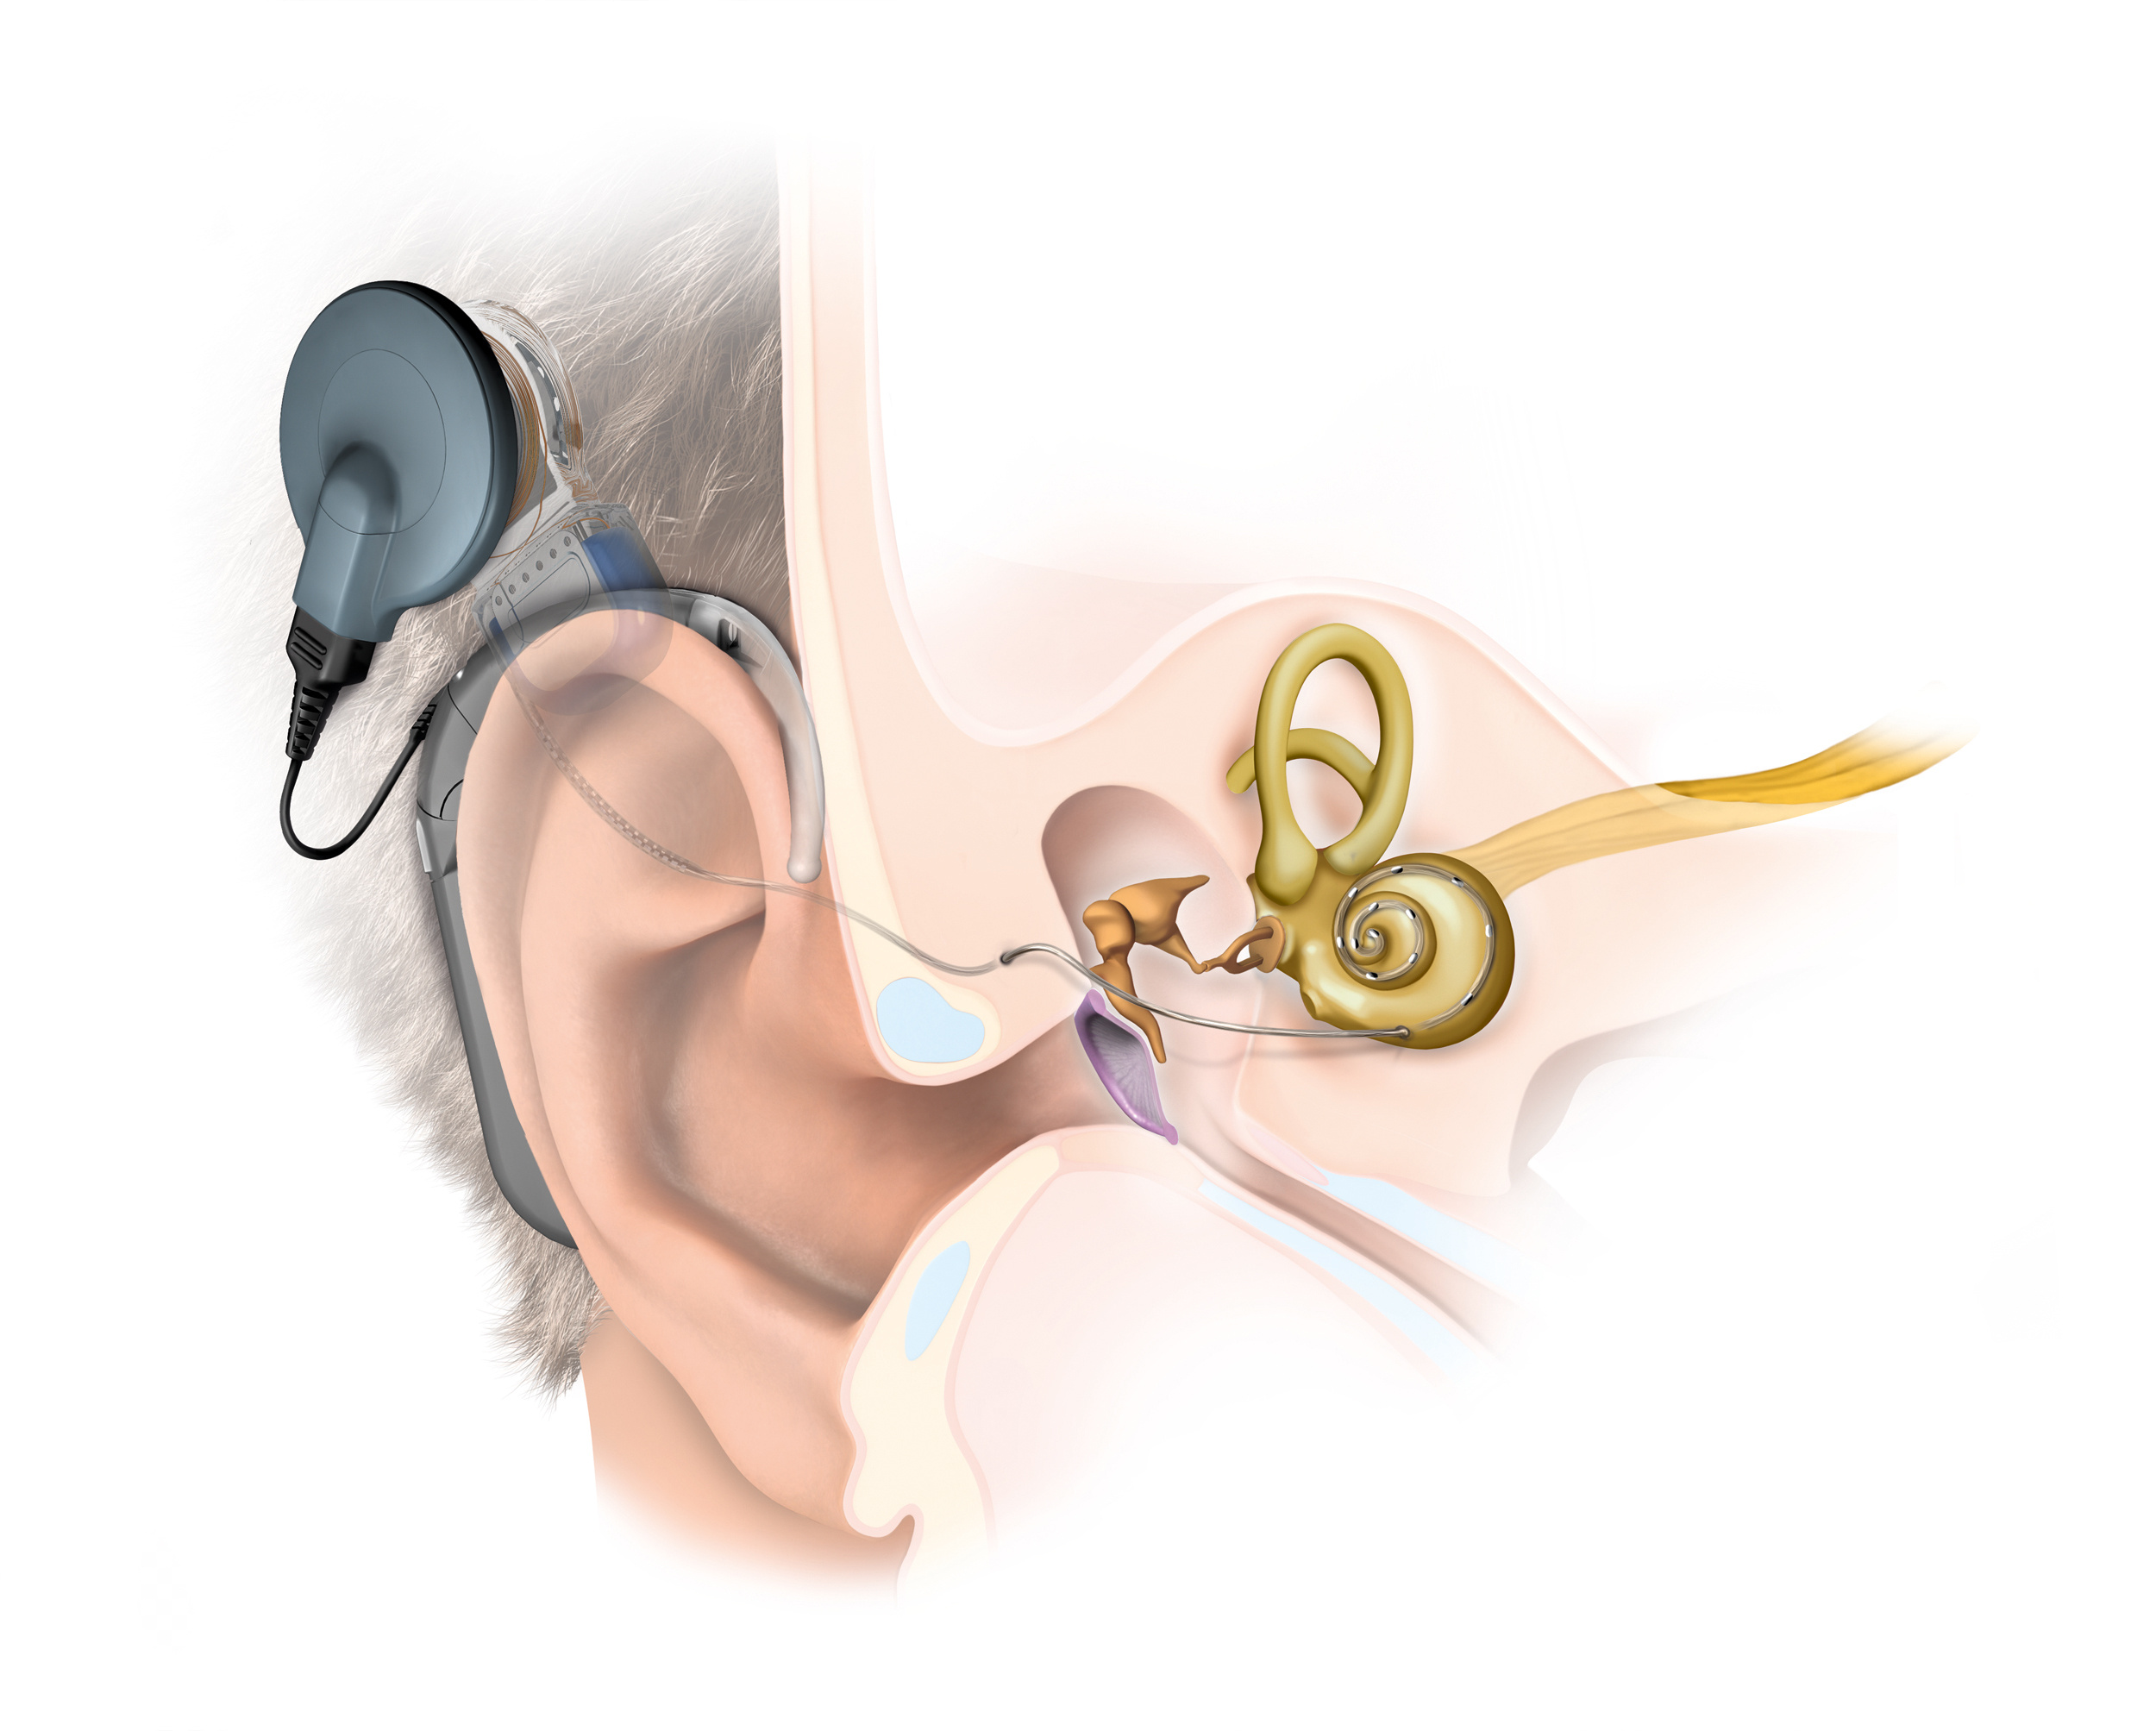 cochlear vs proteome systems limited They also receive limited benefit from traditional hearing aids if the patient is a candidate for a bone anchored system or a cochlear implant.